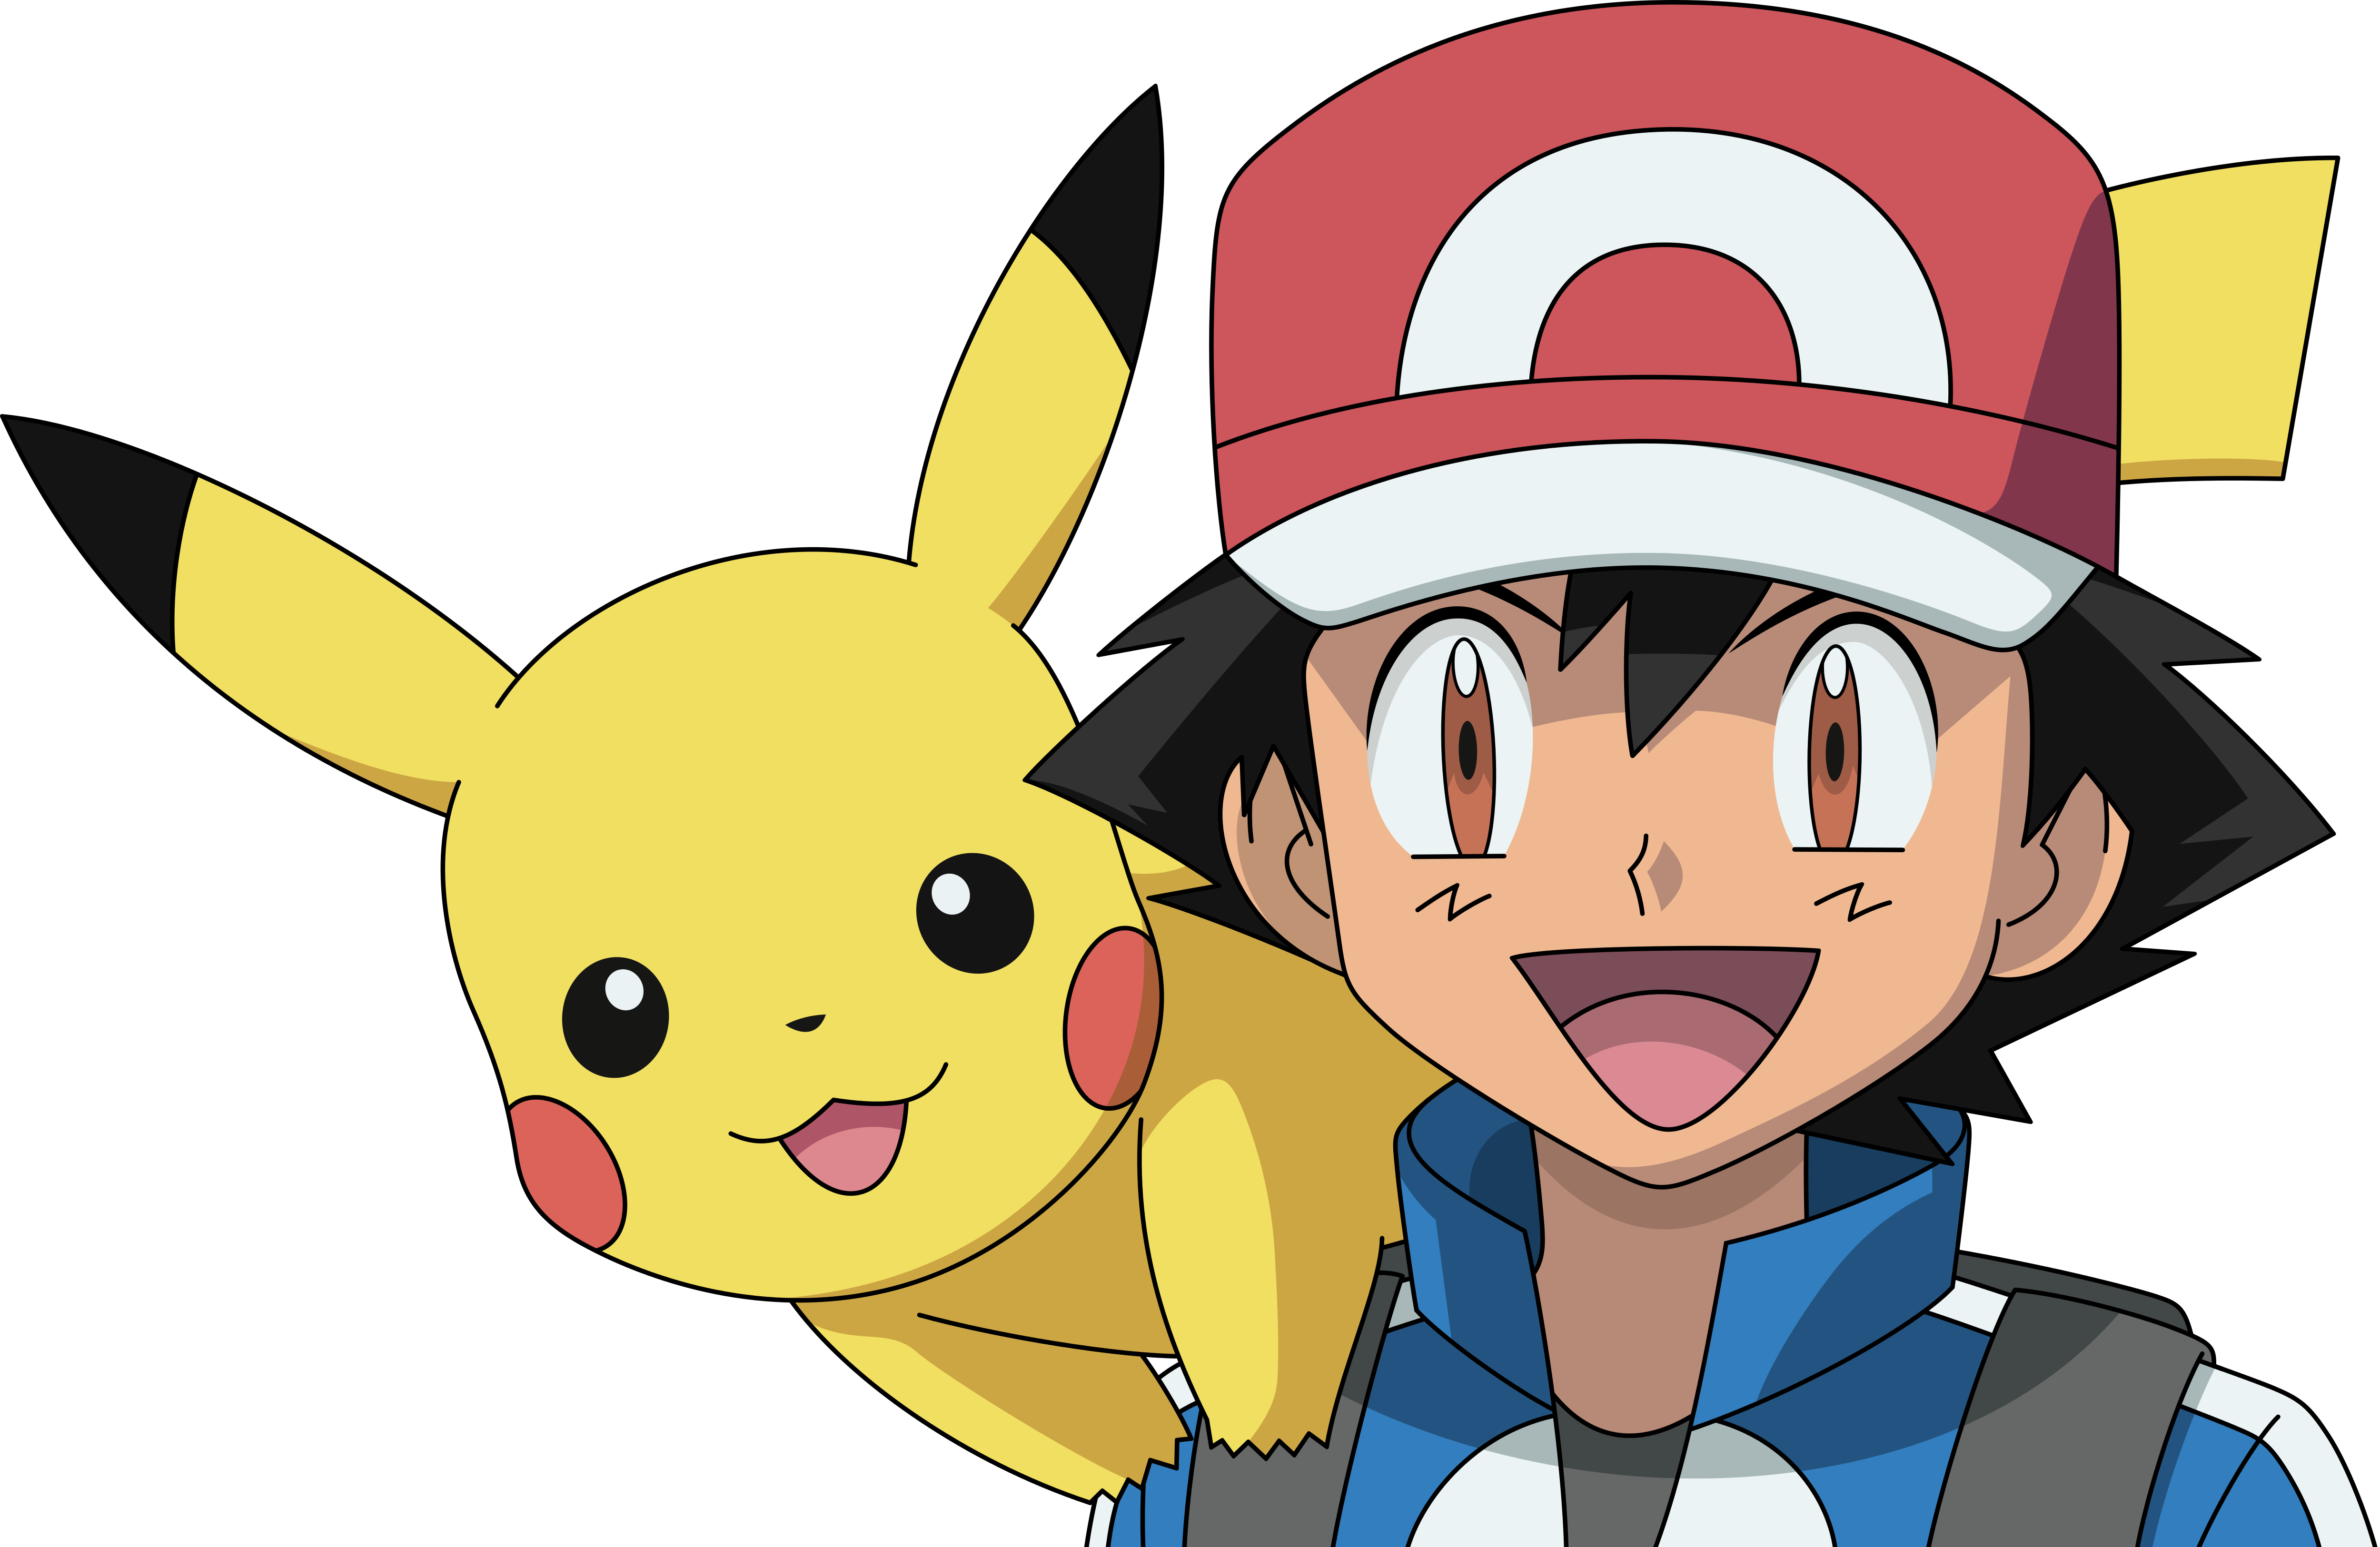 Vector #599 - Ash and Pikachu by DashieSparkle